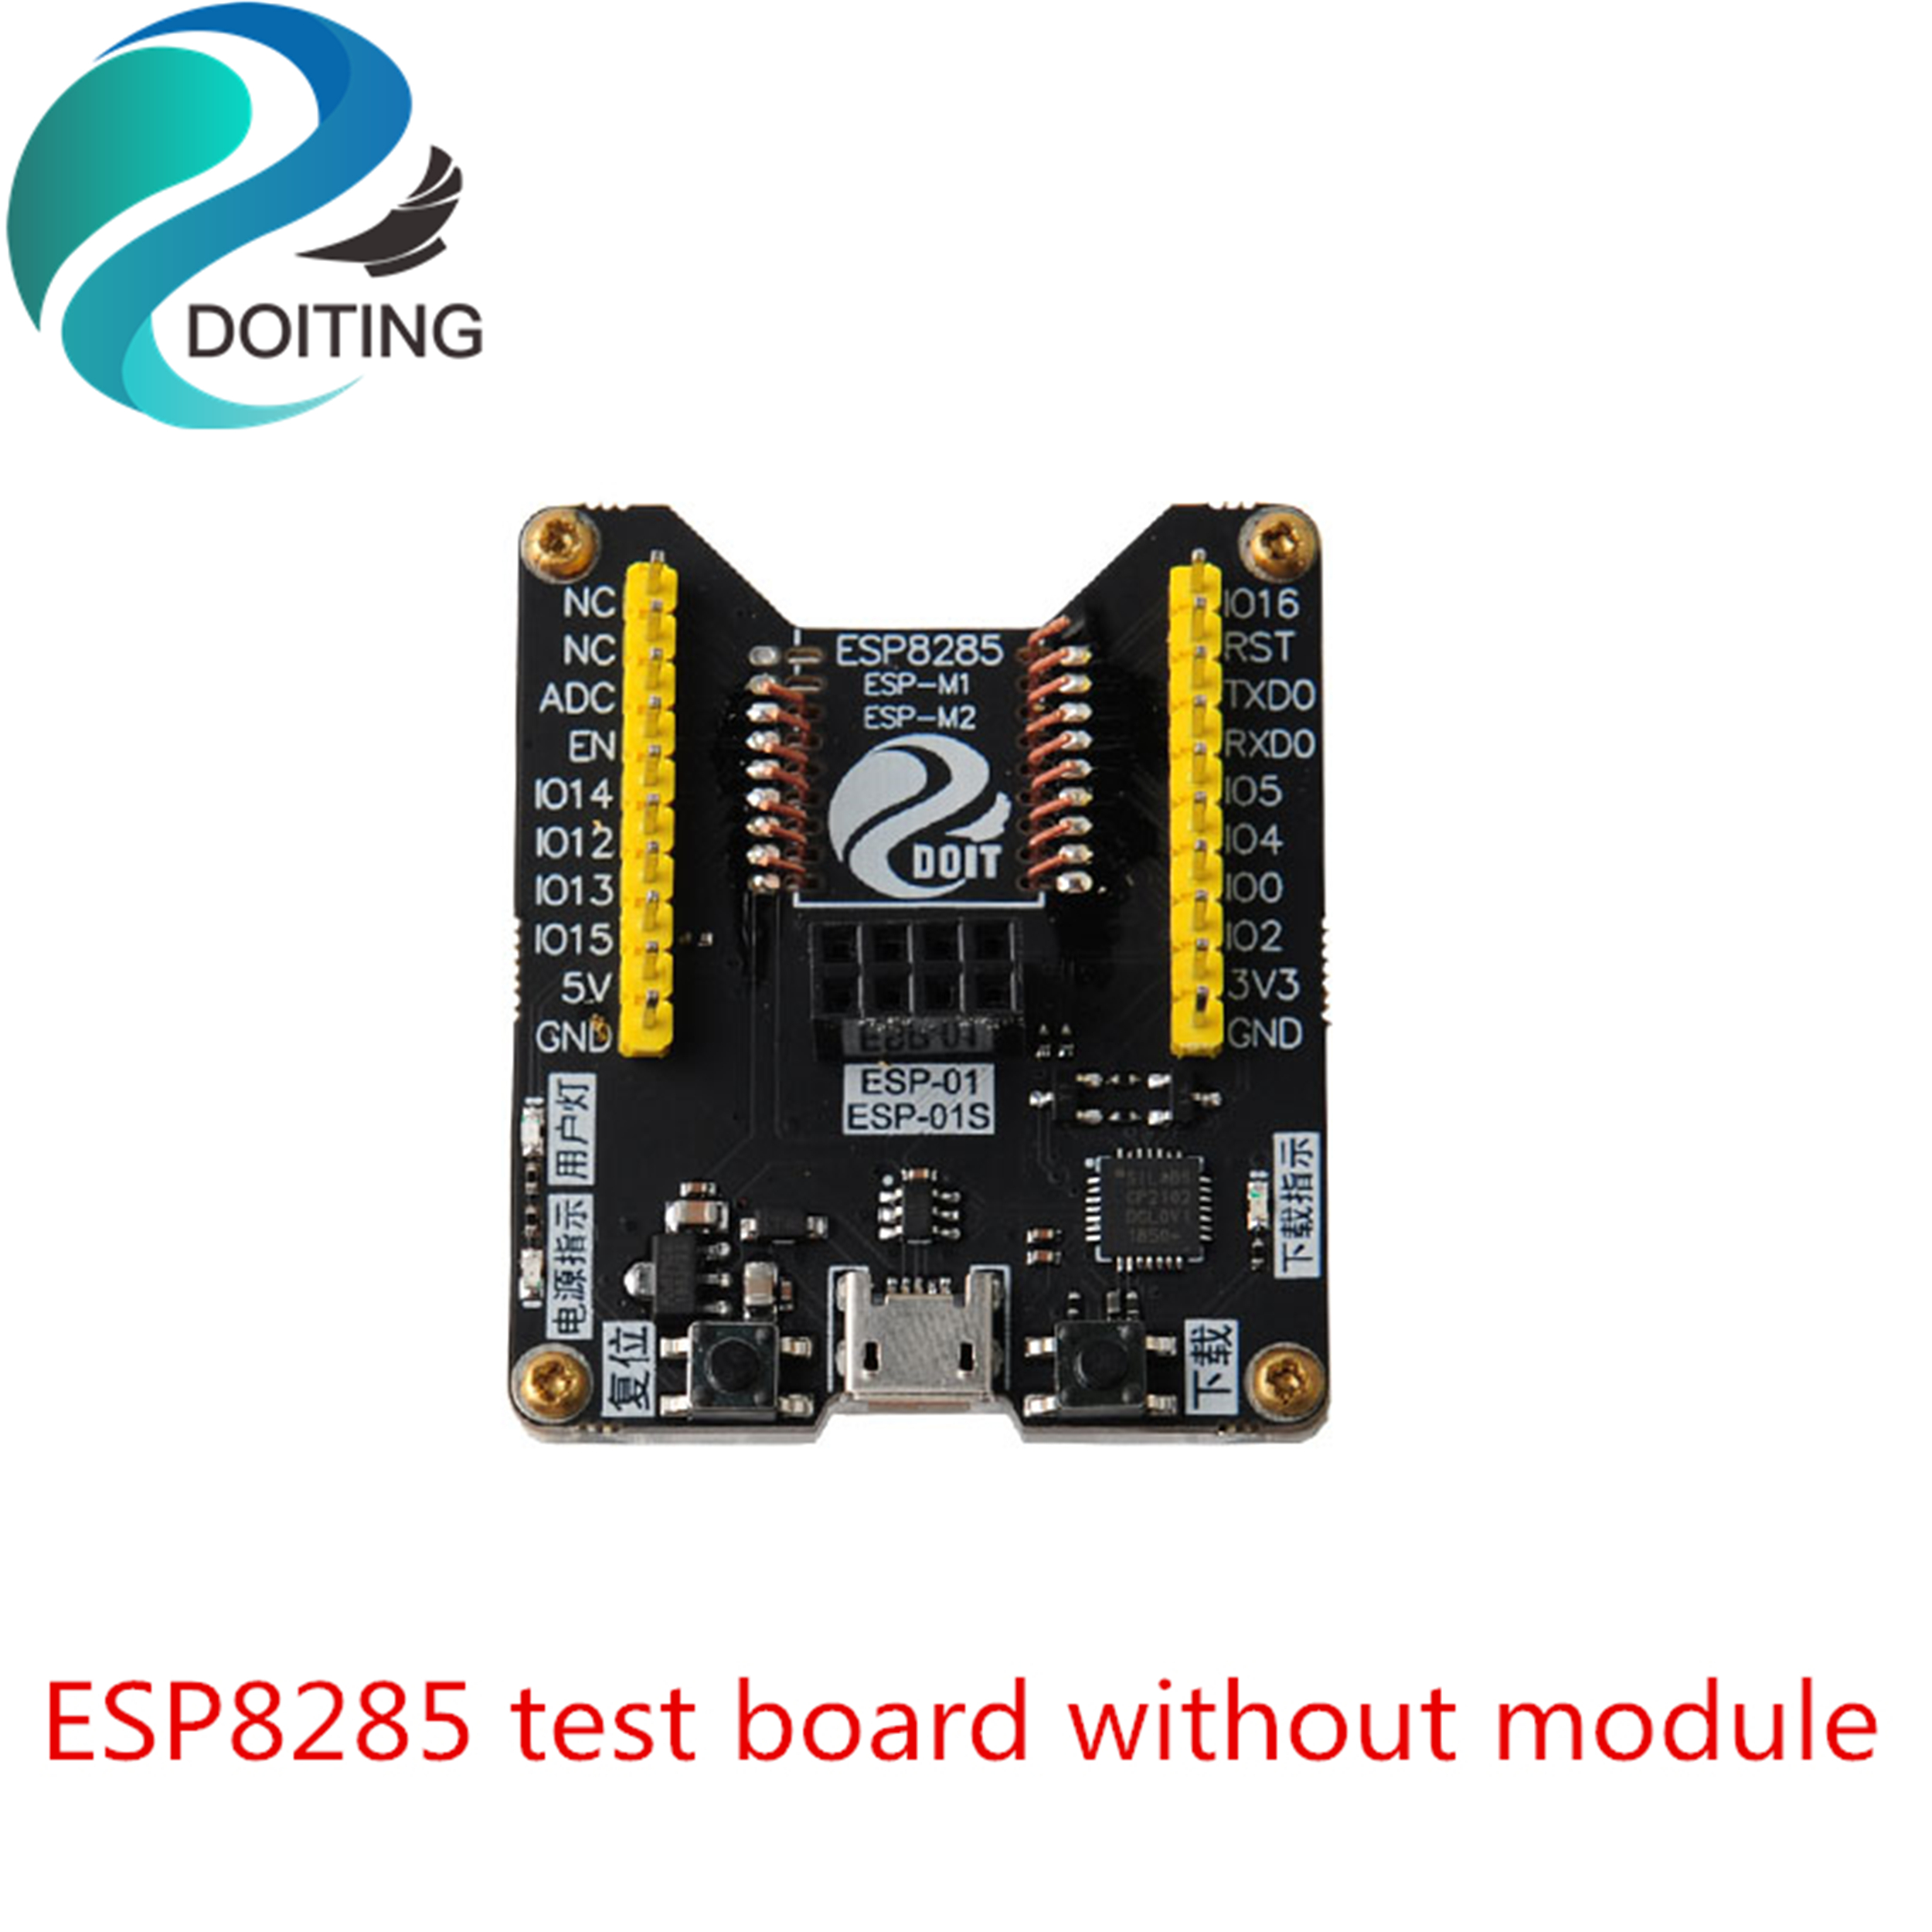 DOITING ESP8266/ESP8285 Test Board Flash Download Tool Firmware Downloader Program Flashing Support ESP12F/ESP12E/ESP07S